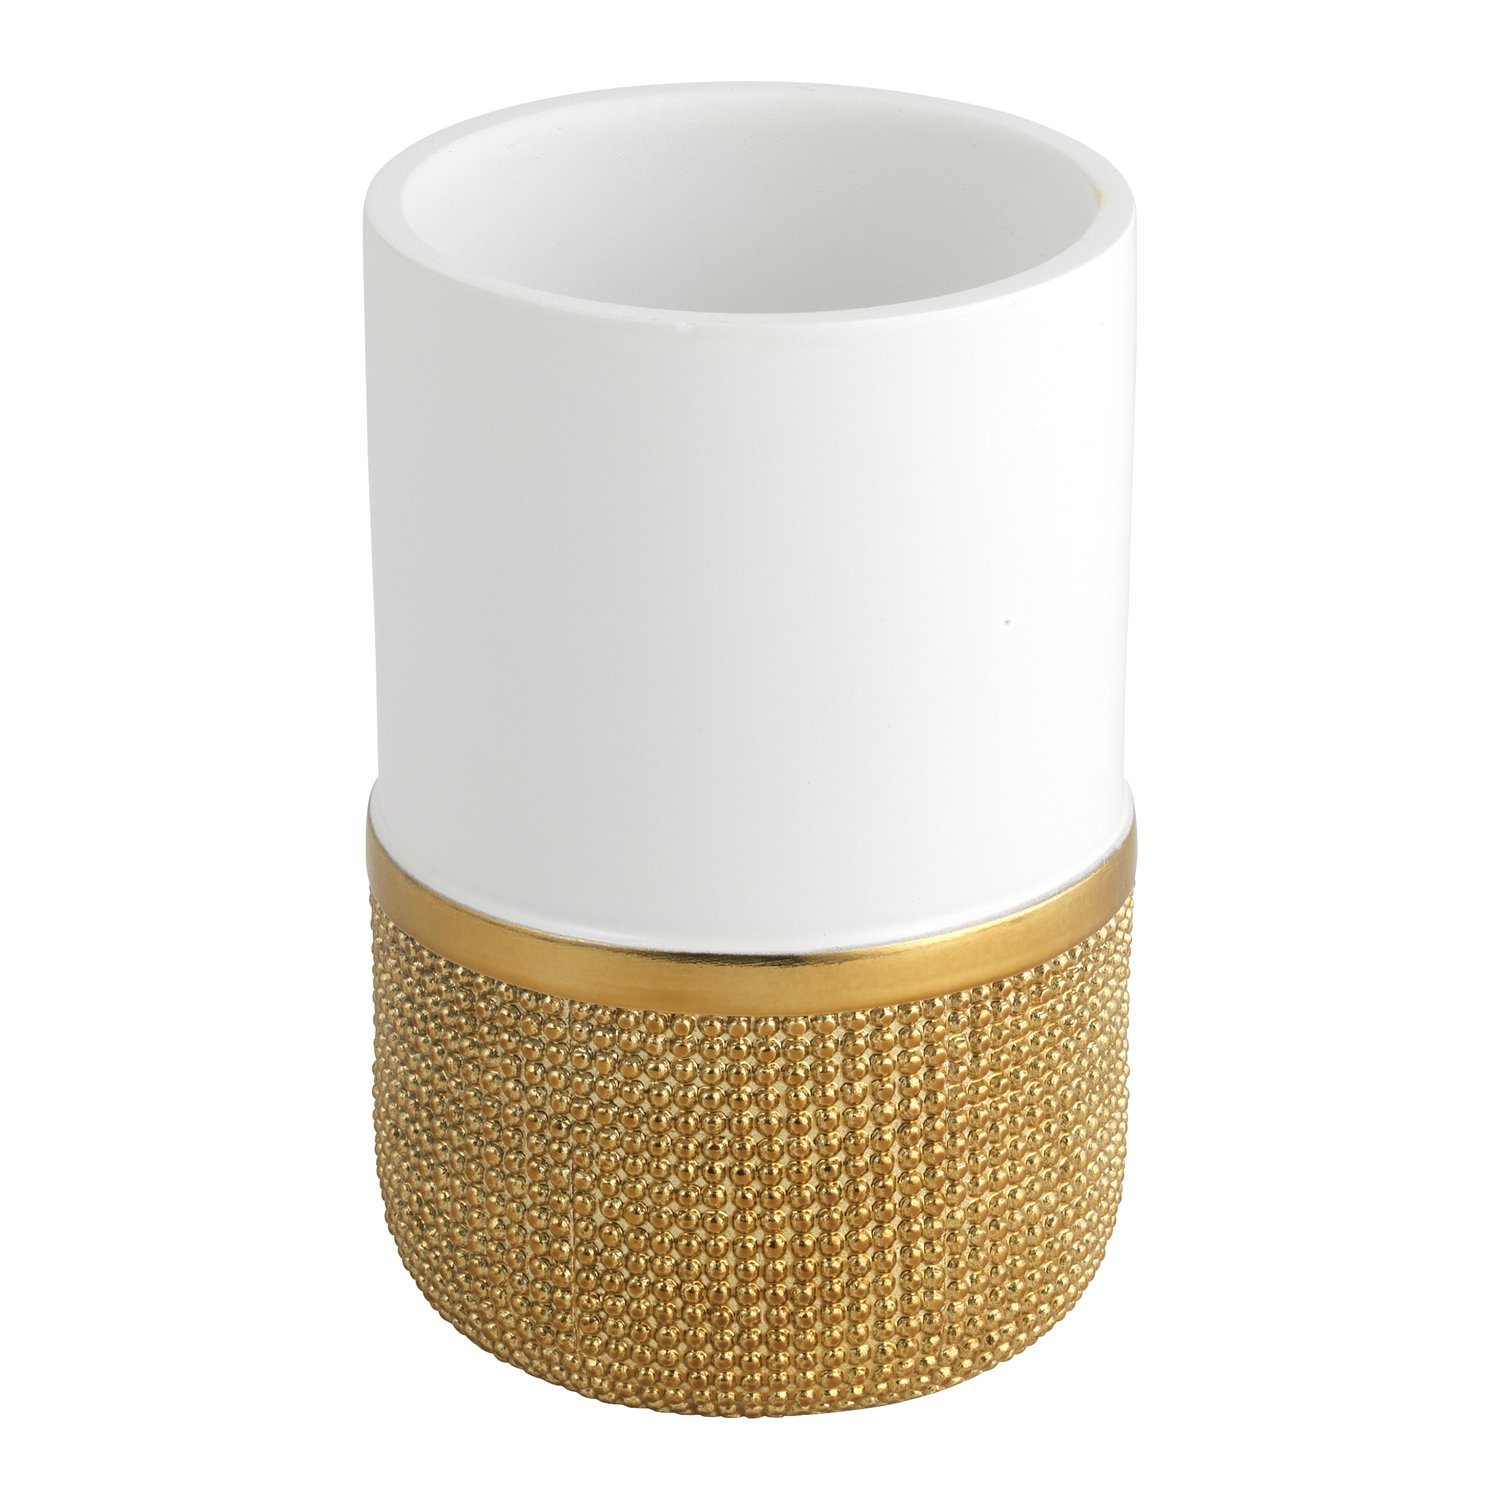 Norizan Collection Popular Bath Waste Basket Gold//White 800579